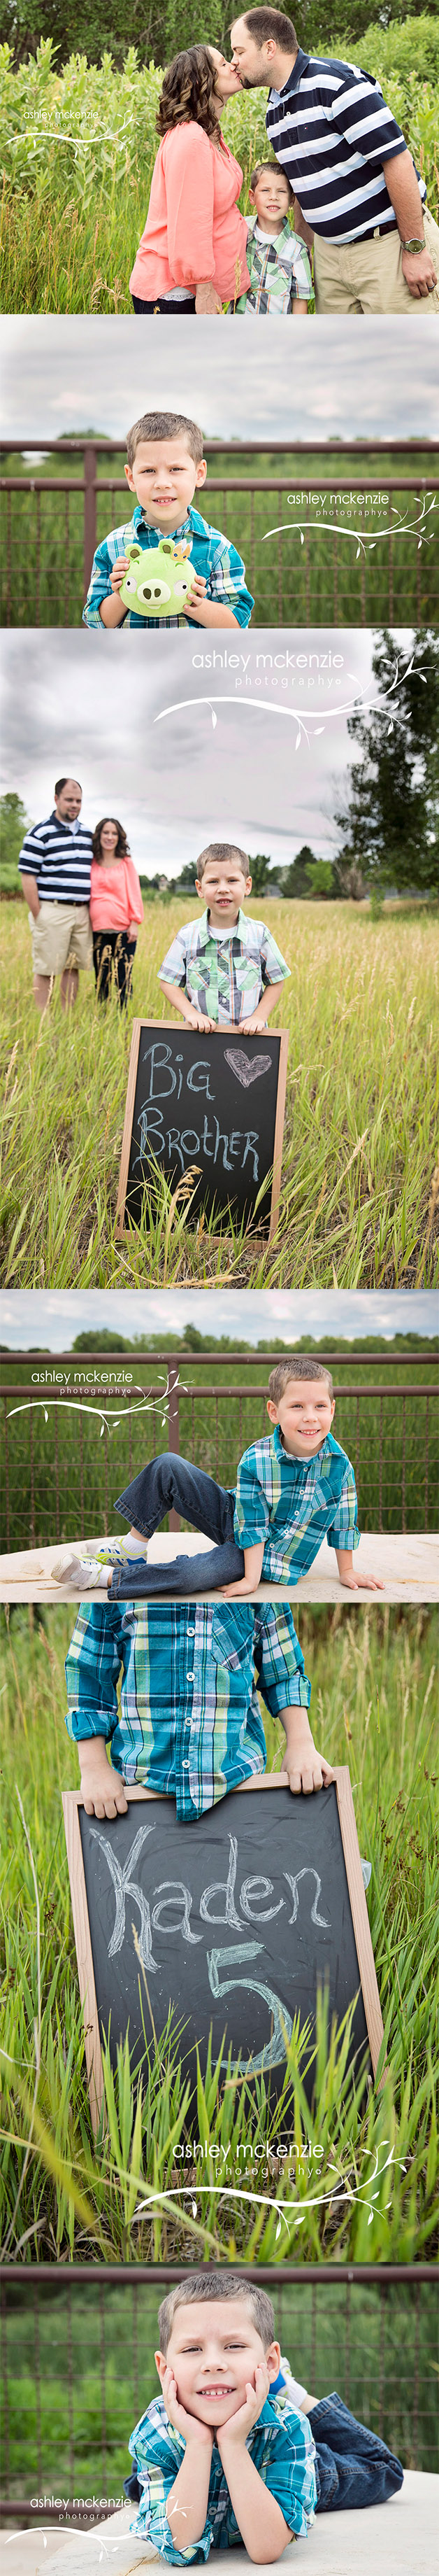 Family Photography Session By Ashley McKenzie Photography in Thornton, CO